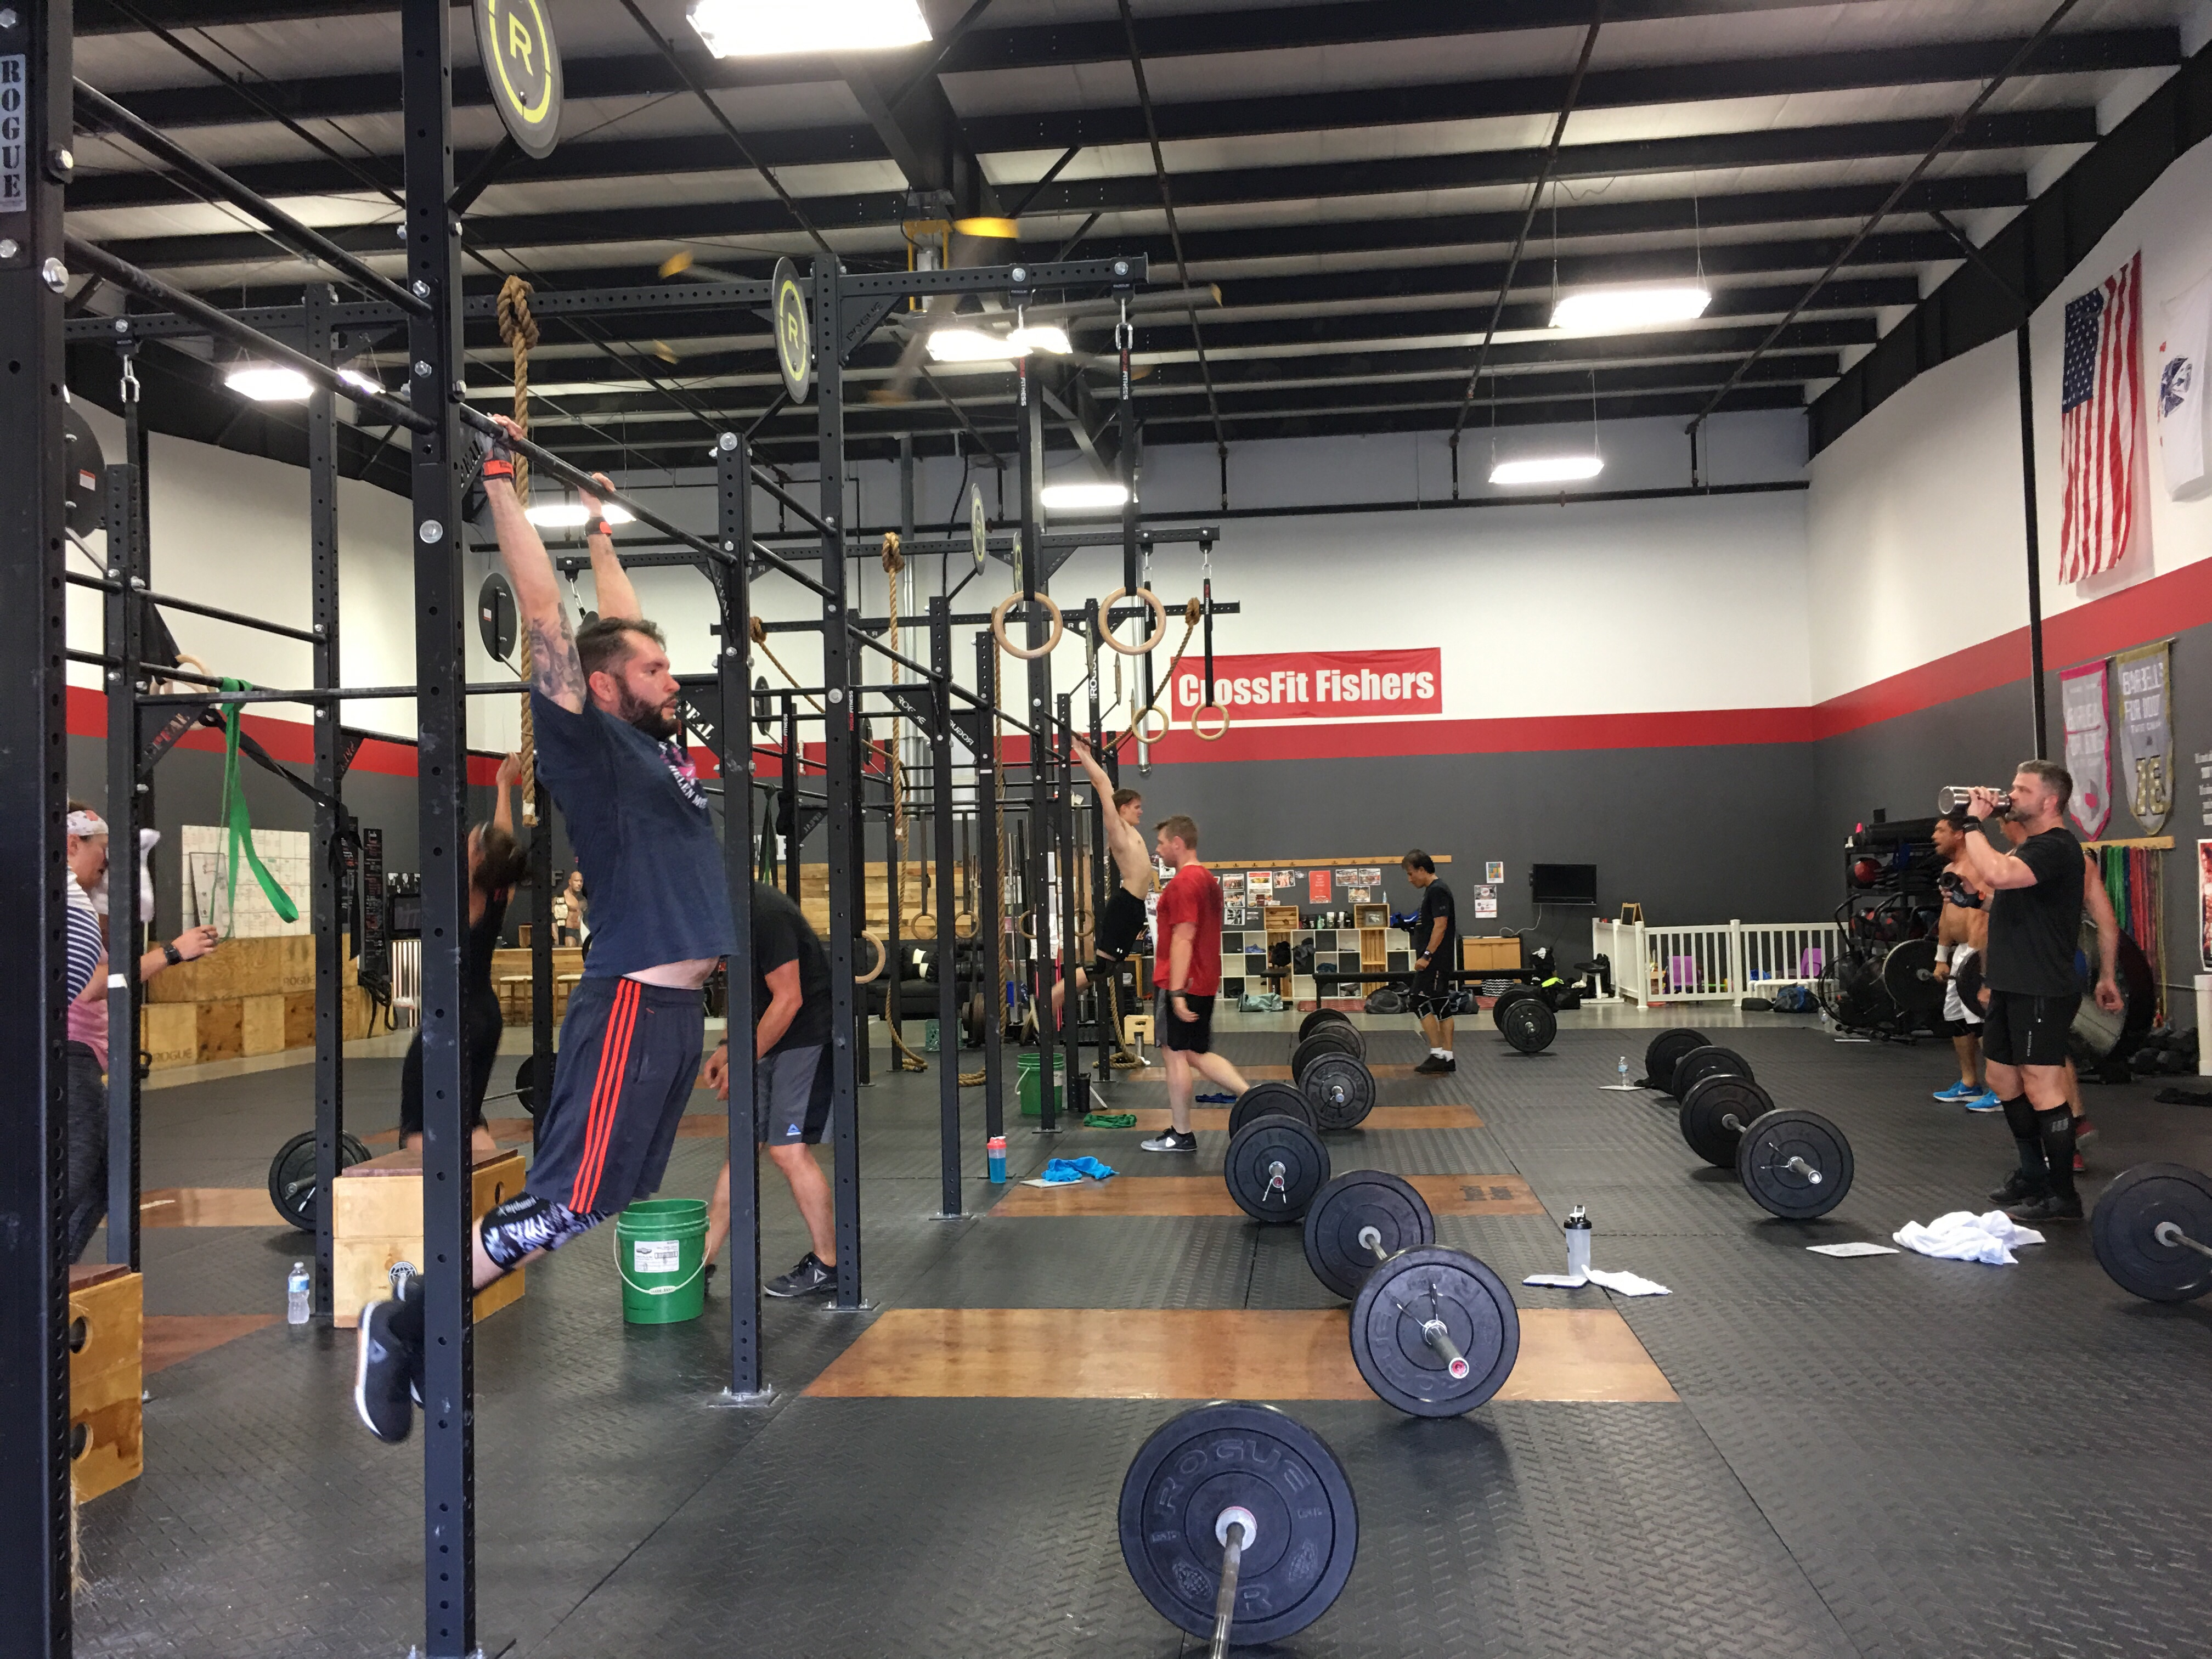 crossfit fishers – making a better you!